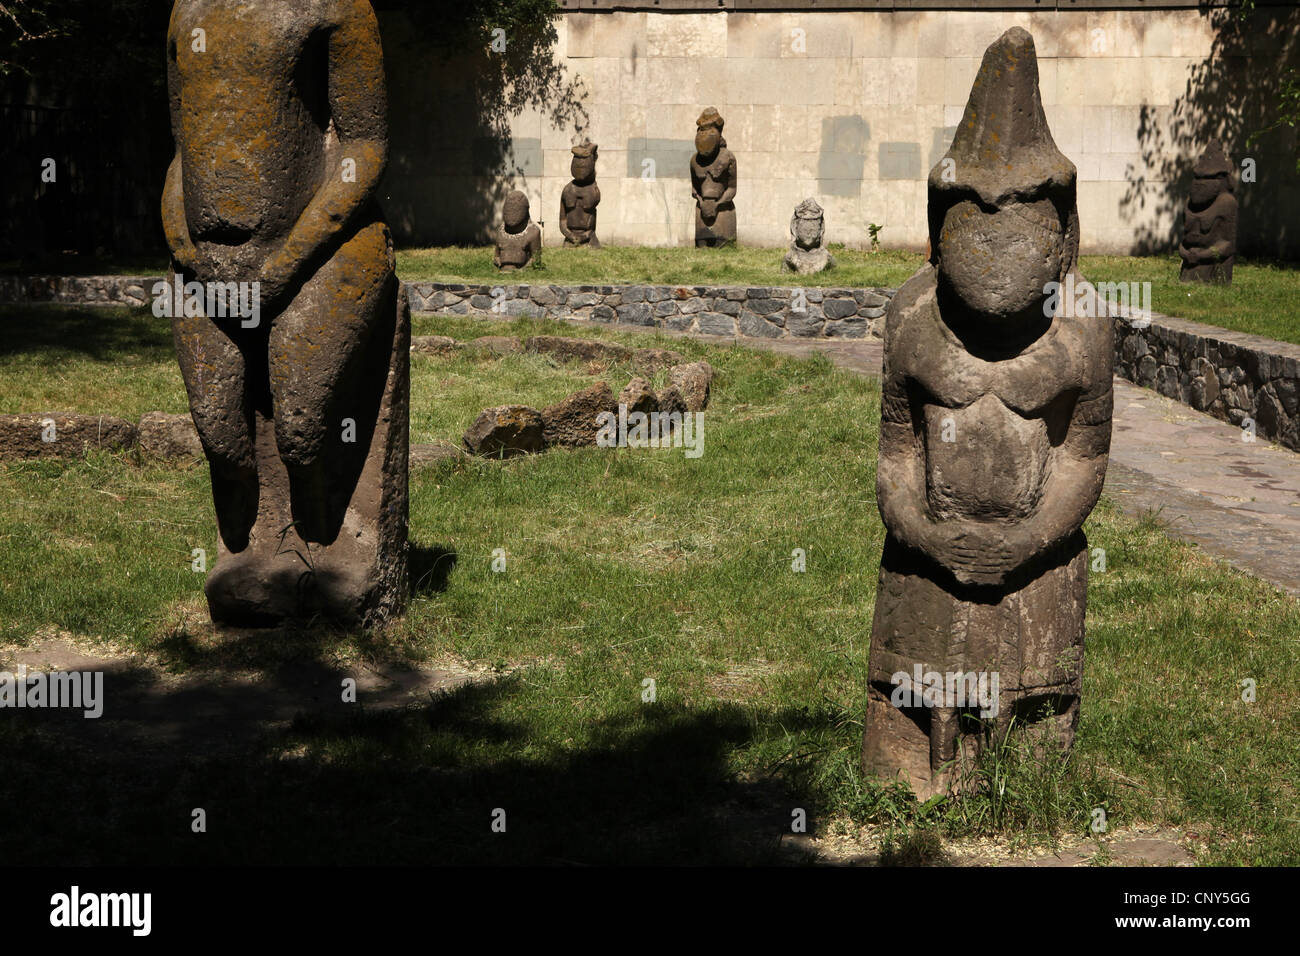 Kipchak stone statues known as the Stony Women exhibited in front of the Historical Museum in Dnipro (Dnipropetrovsk), - Stock Image